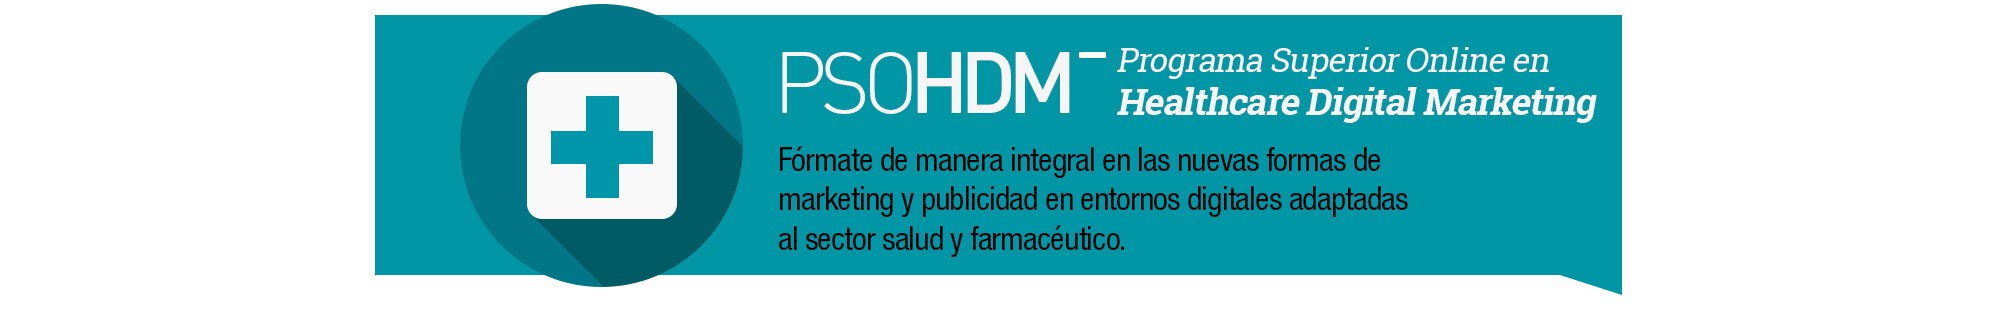 Programa Superior Online Healthcare Digital Marketing